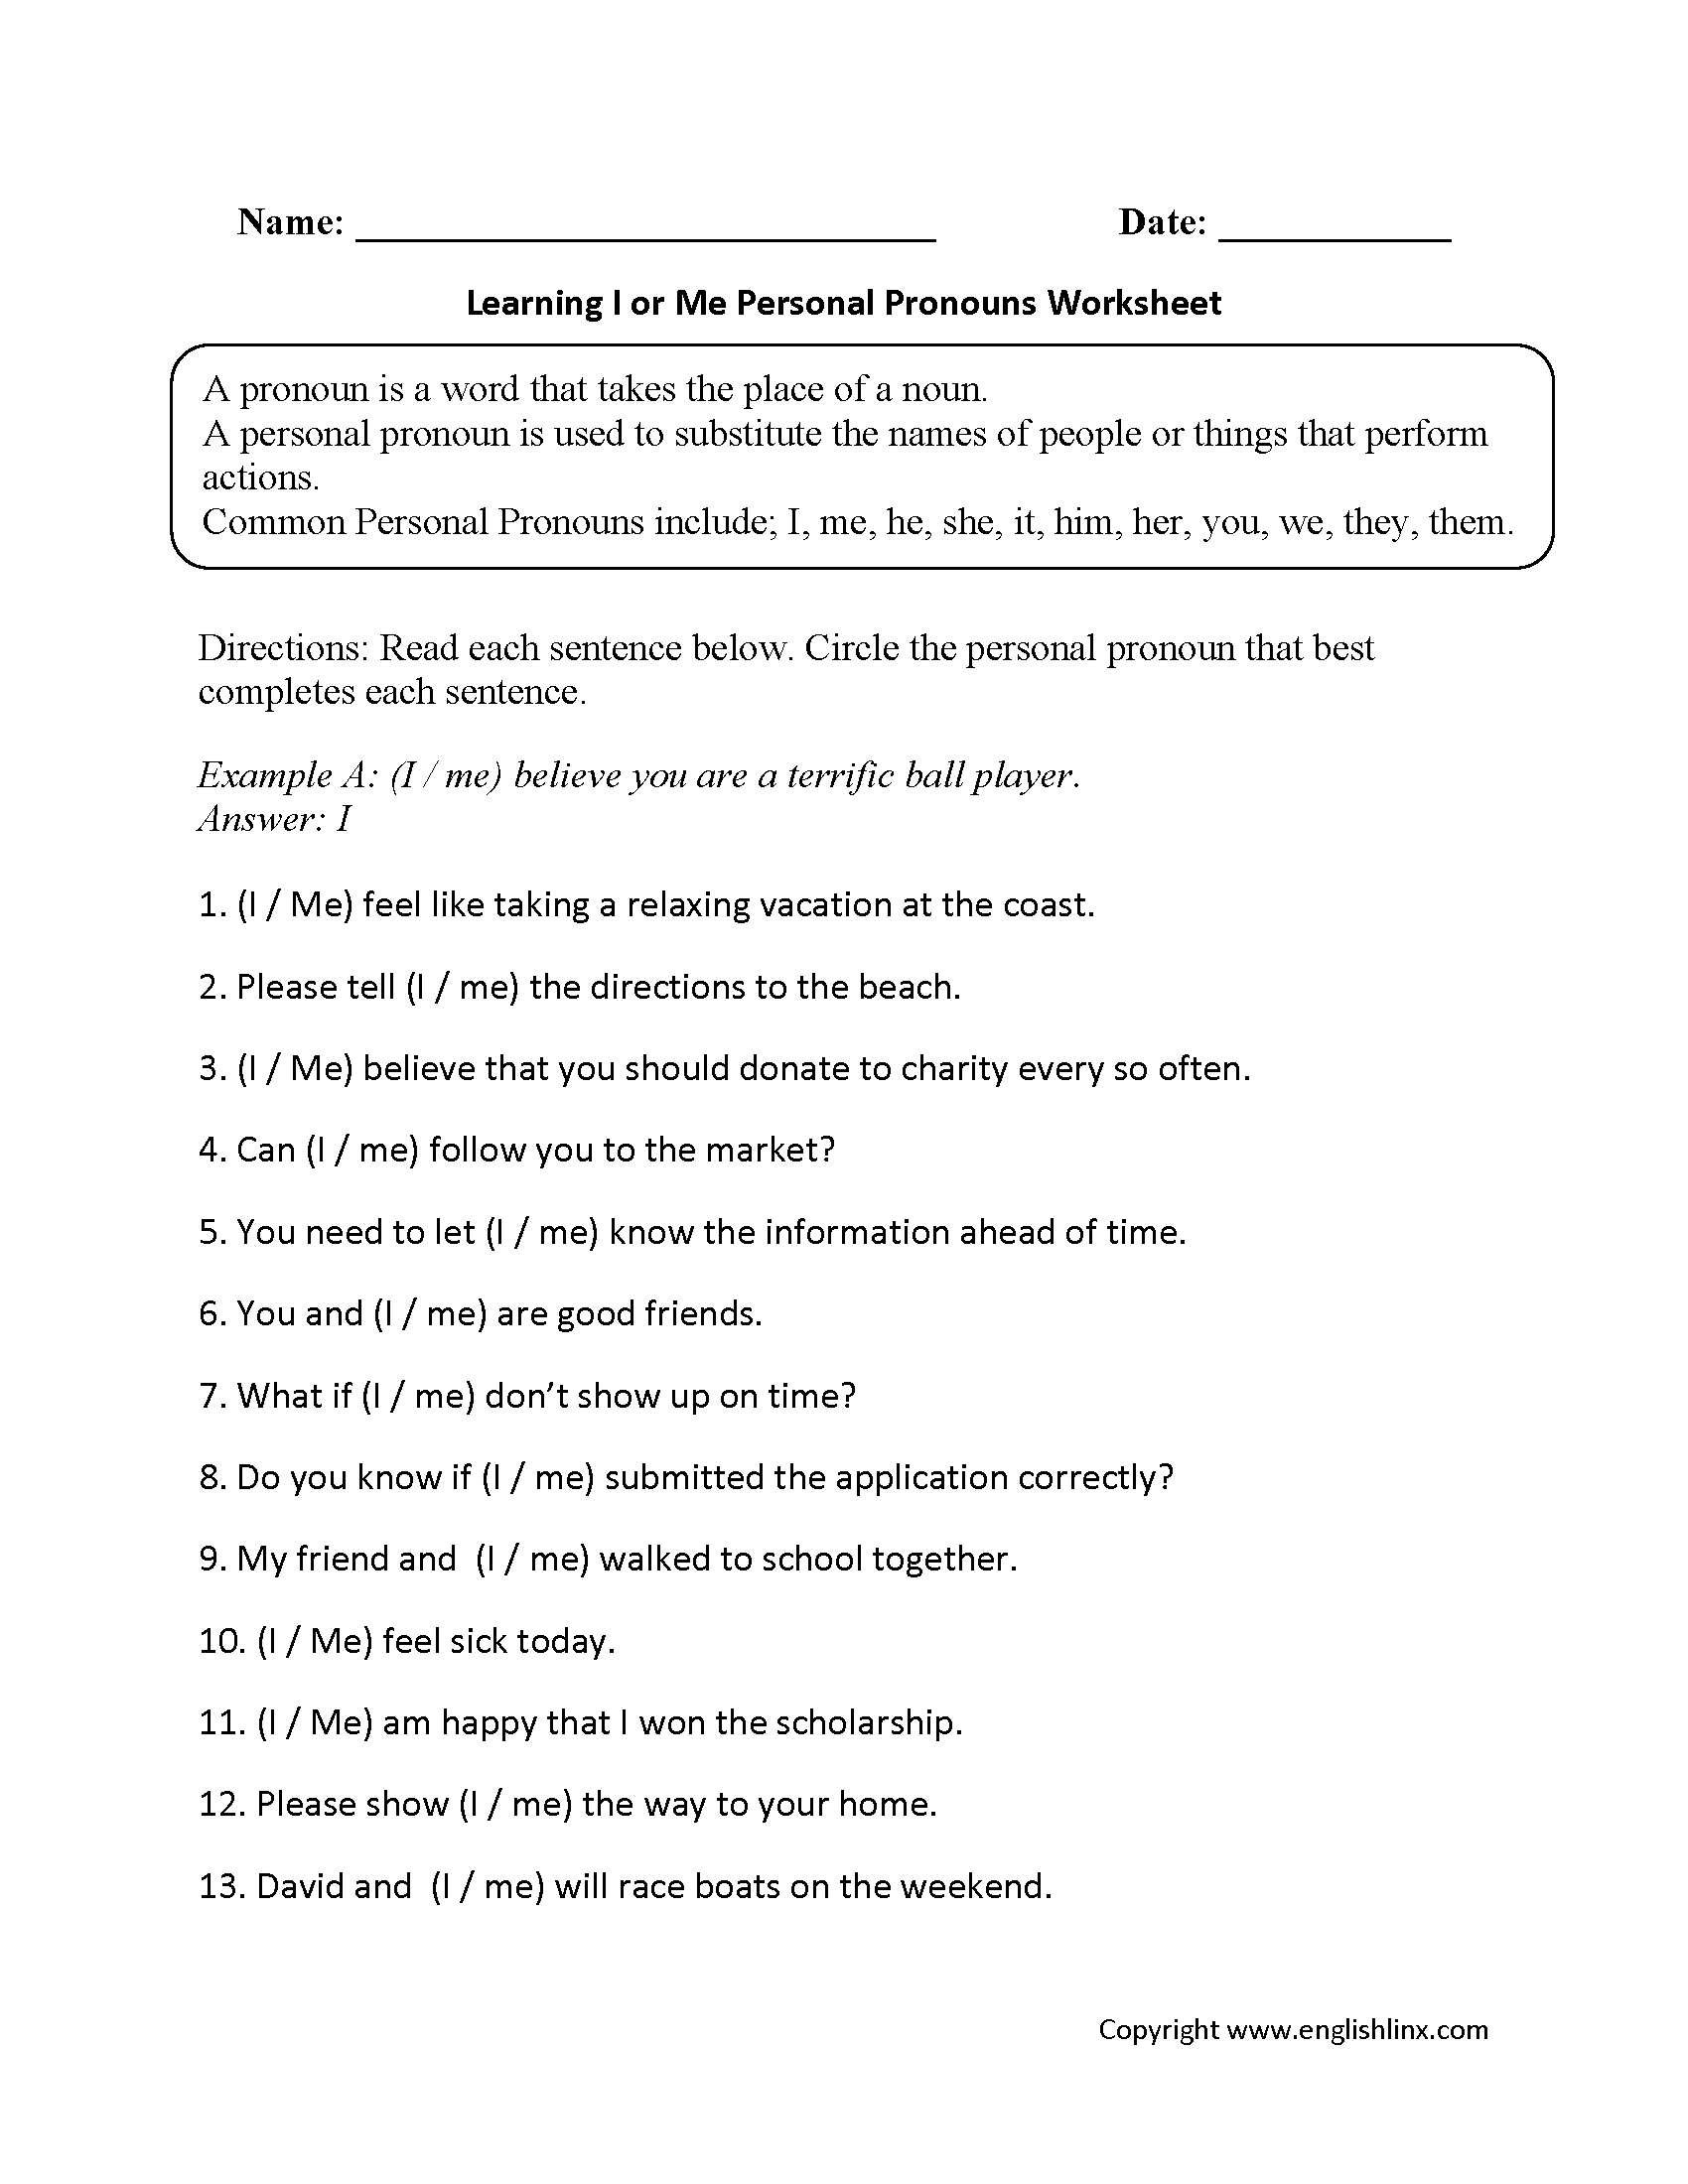 Learning I Or Me Personal Pronouns Worksheets